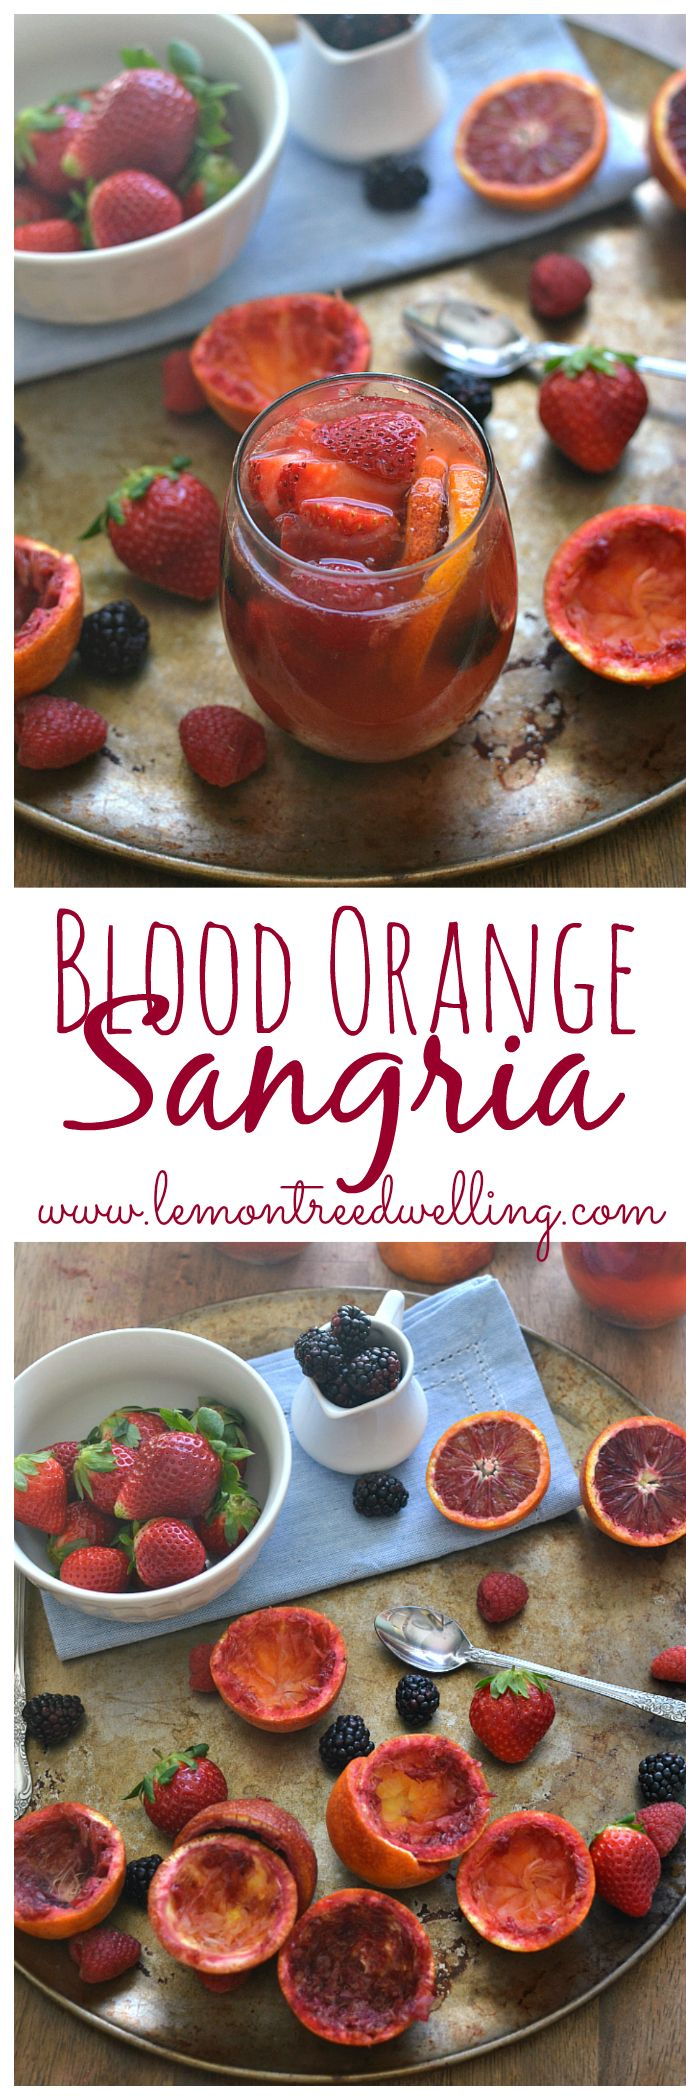 Blood Orange Sangria with fresh berries. SO delicious!